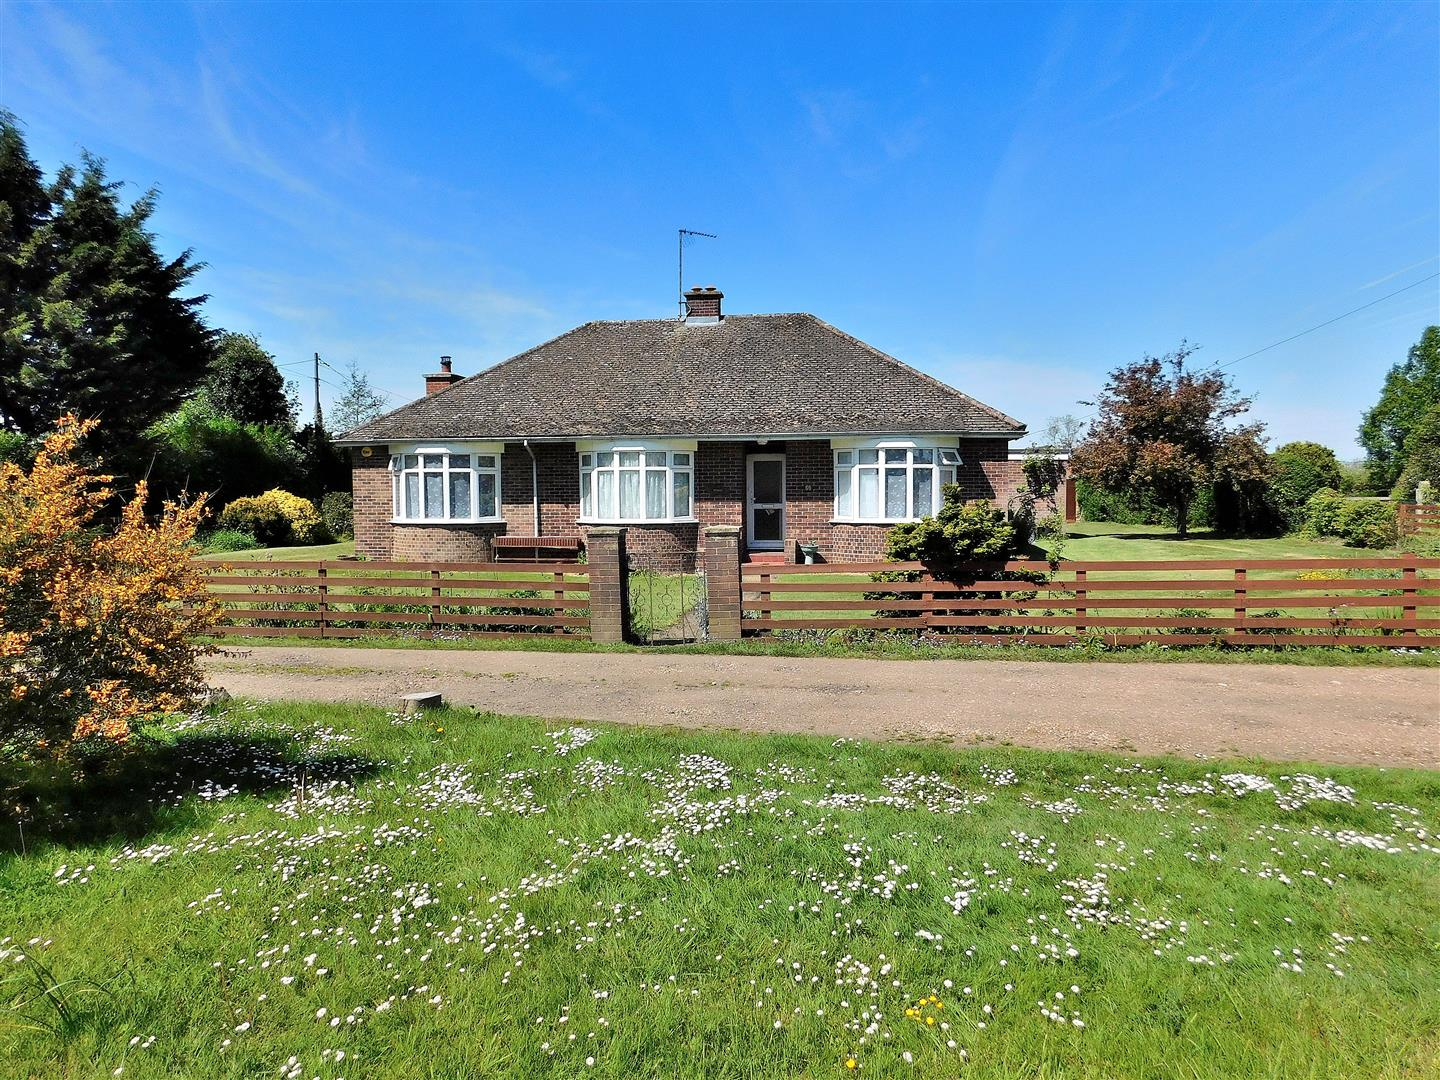 3 bed detached bungalow for sale in King's Lynn, PE33 0NB - Property Image 1